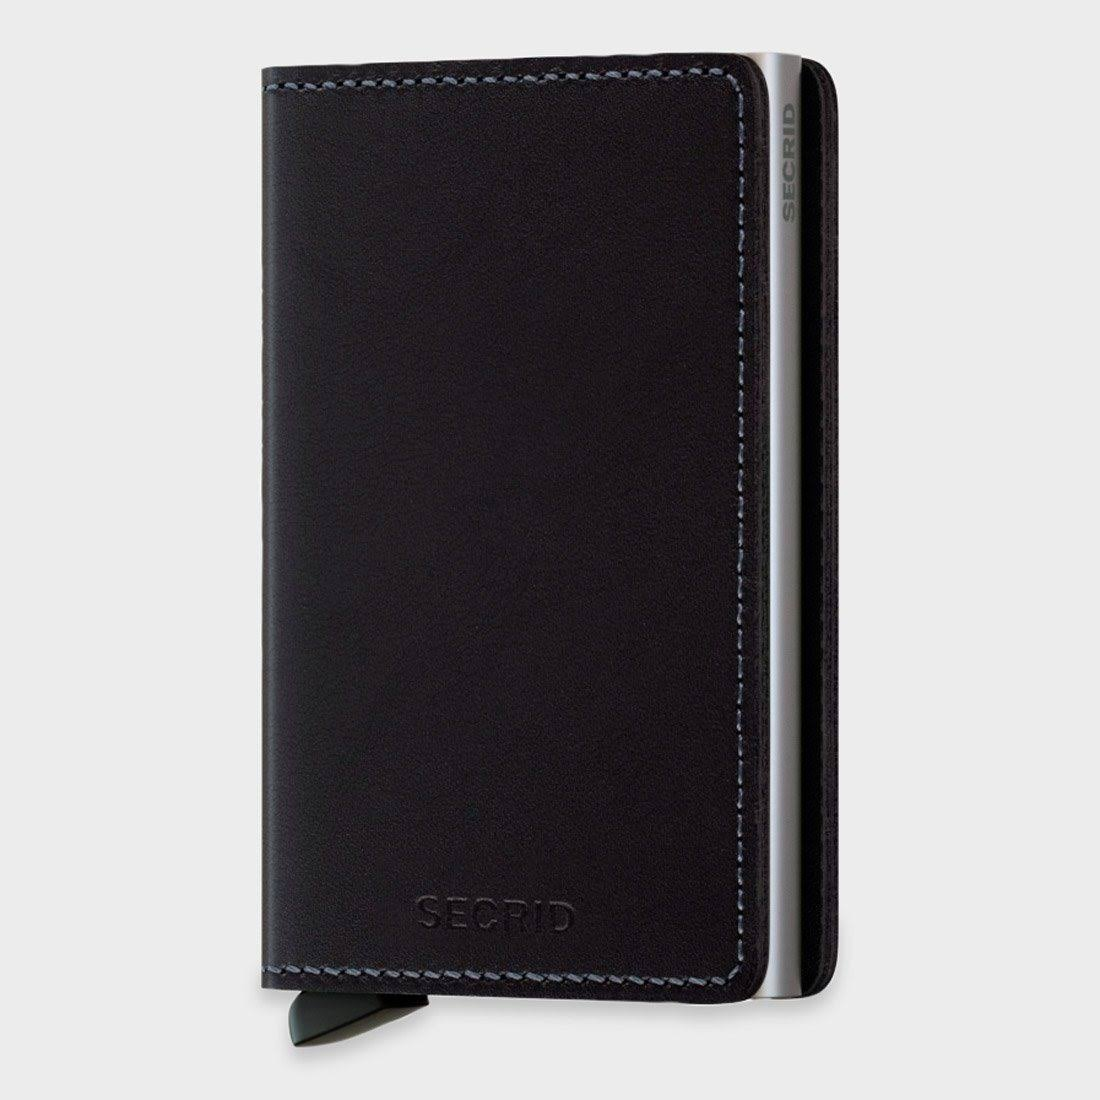 Secrid Slim Wallet - Leather